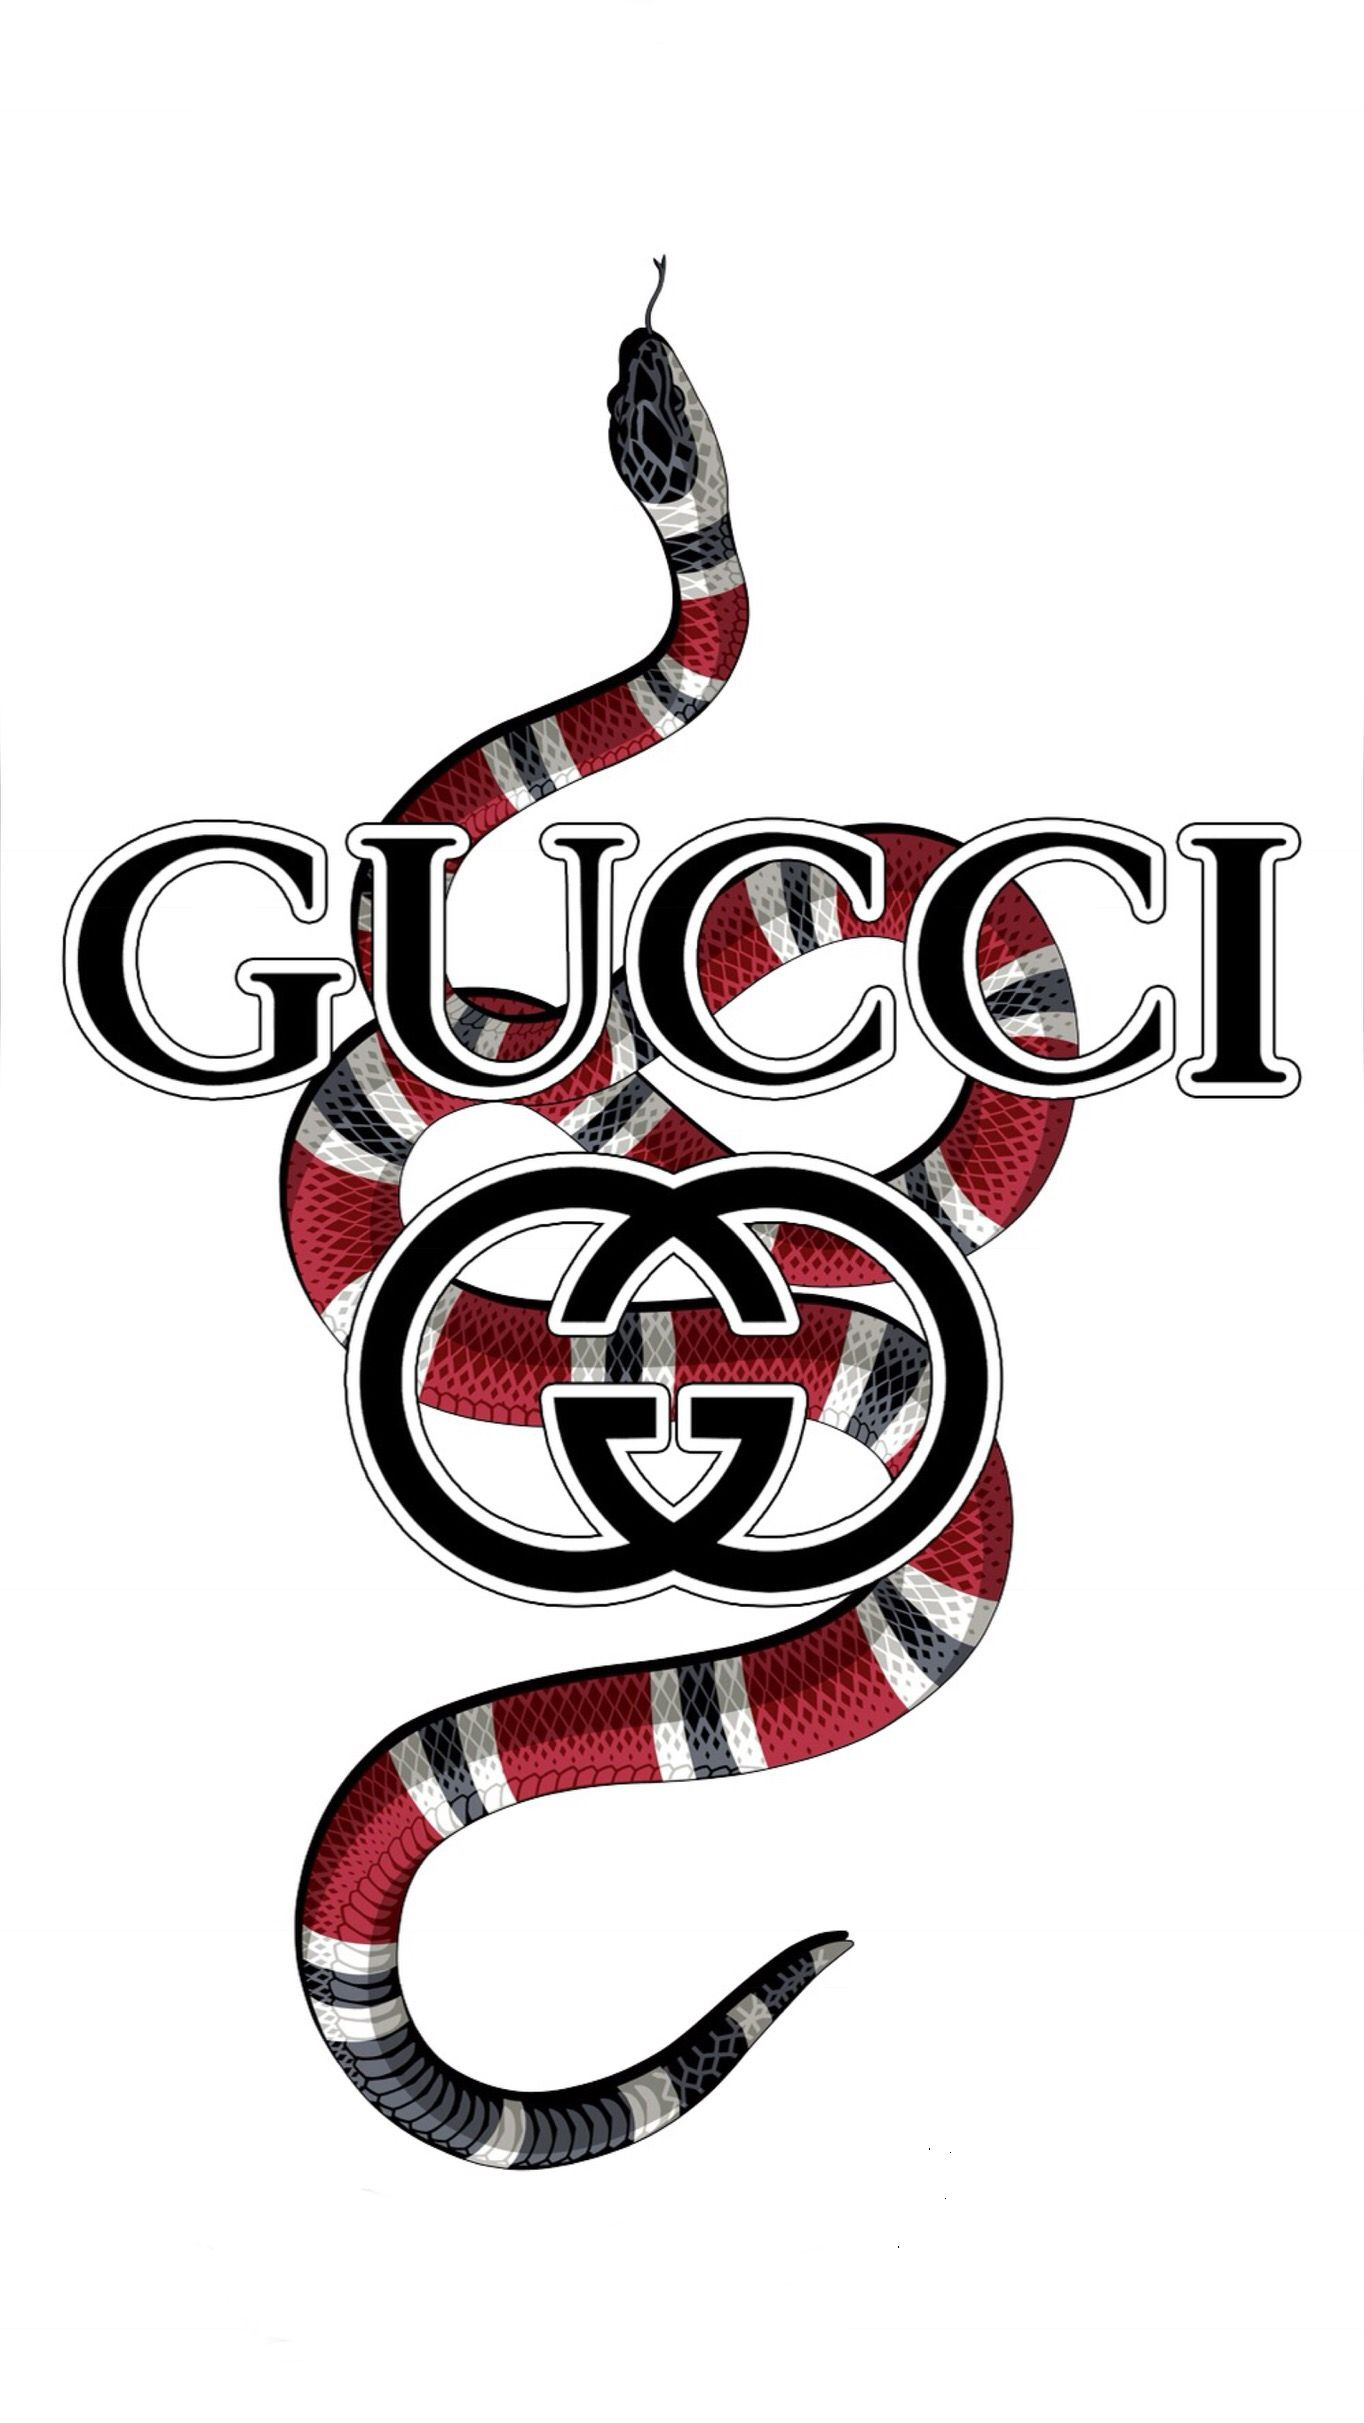 Pin By Public Figure Car On Photography Gucci Wallpaper Iphone Hypebeast Wallpaper Hype Wallpaper